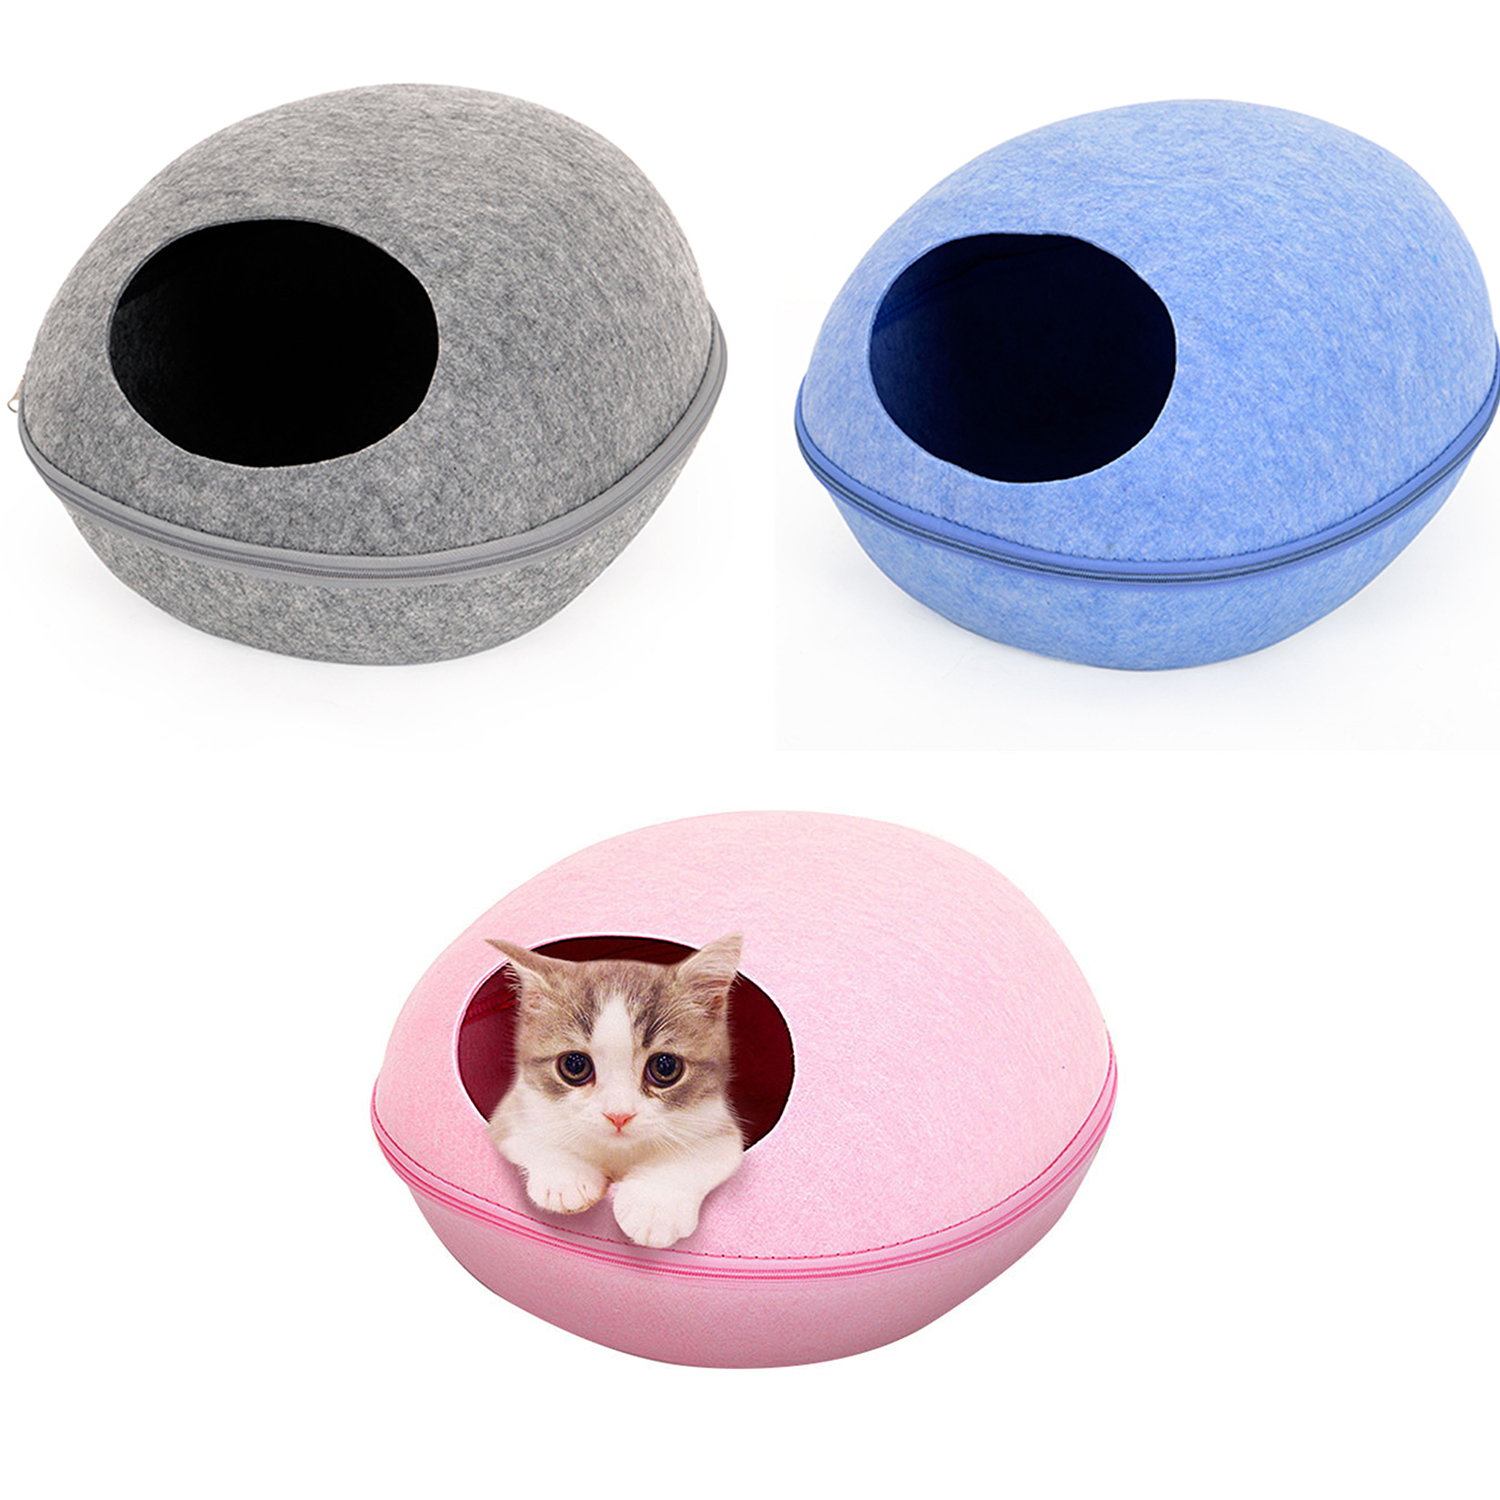 Creative Bed Pets Cat Sleeping House Comfortable Warm Pet House Bag For All Seasons Soft Egg Cave Bed for Cats Kennel Beds Nest